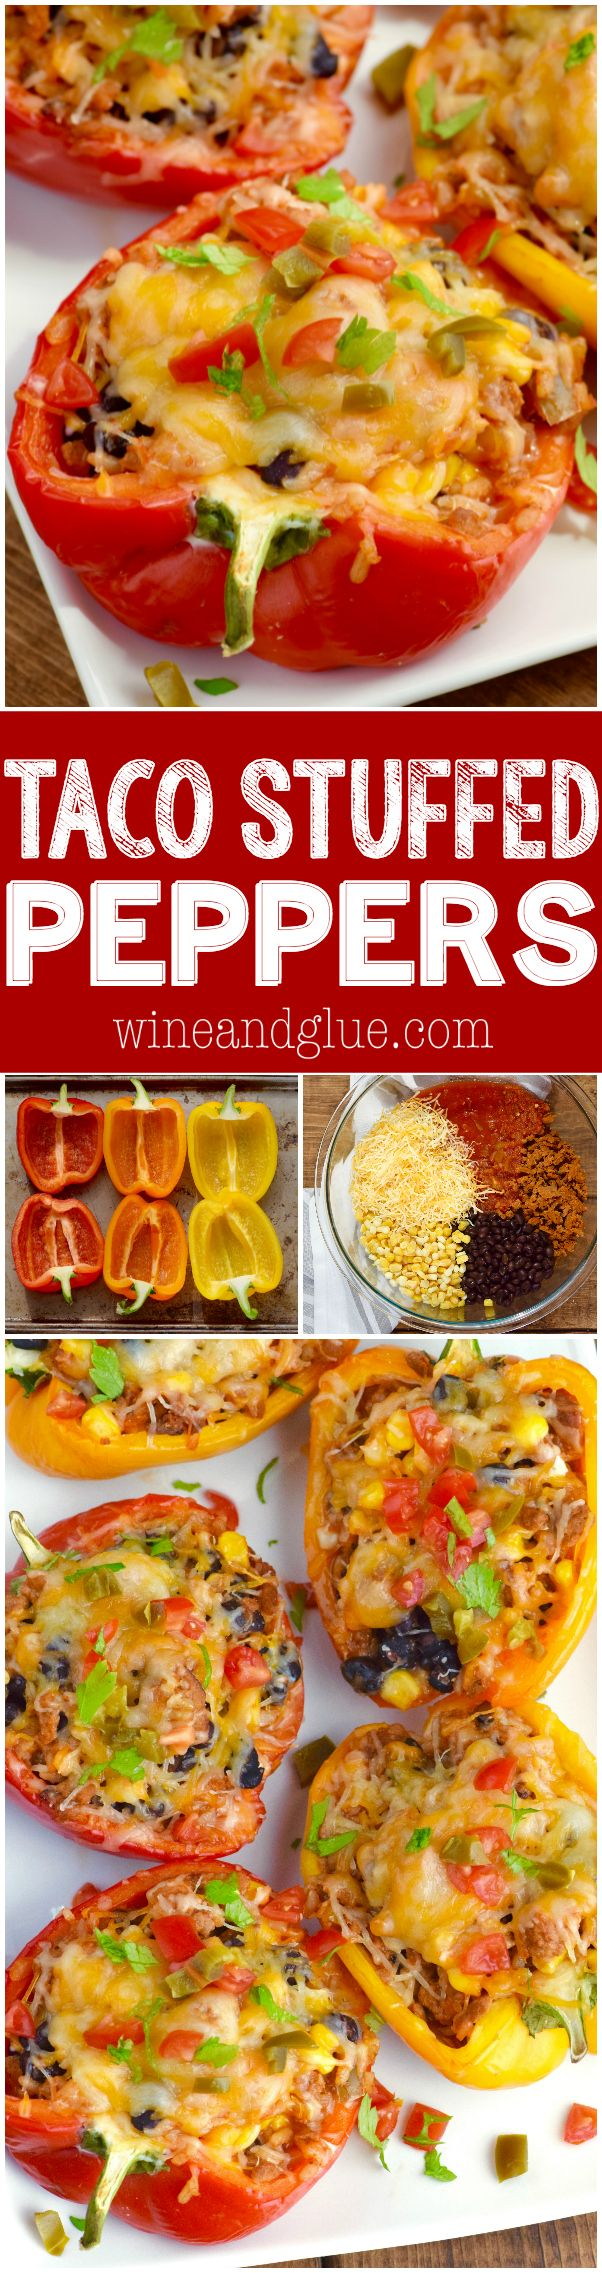 These Taco Stuffed Peppers are such an easy weeknight dinner that are packed…: